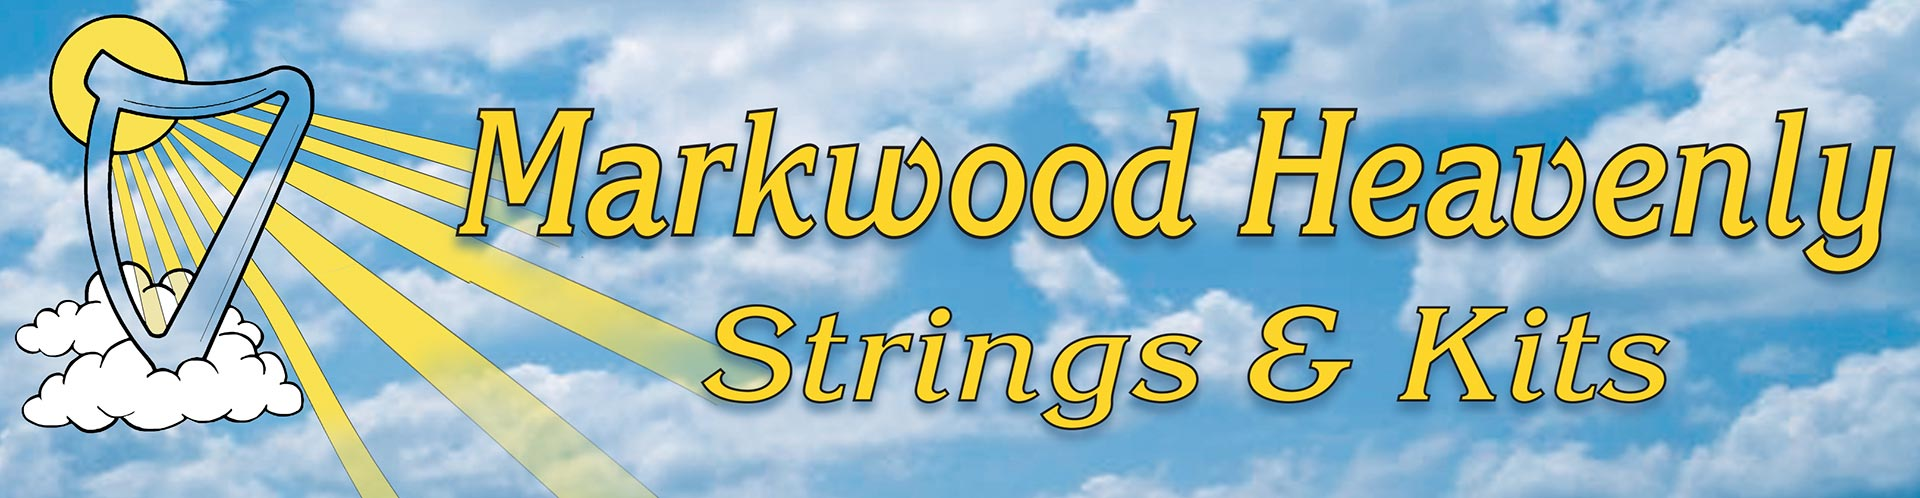 Markwood Heavenly Strings & Cases, providing high quality custom harp strings, stringing analysis, harp strings, harp stringing, harp string replacement, custom soft harp cases, harp string charts, Cambria harp kits